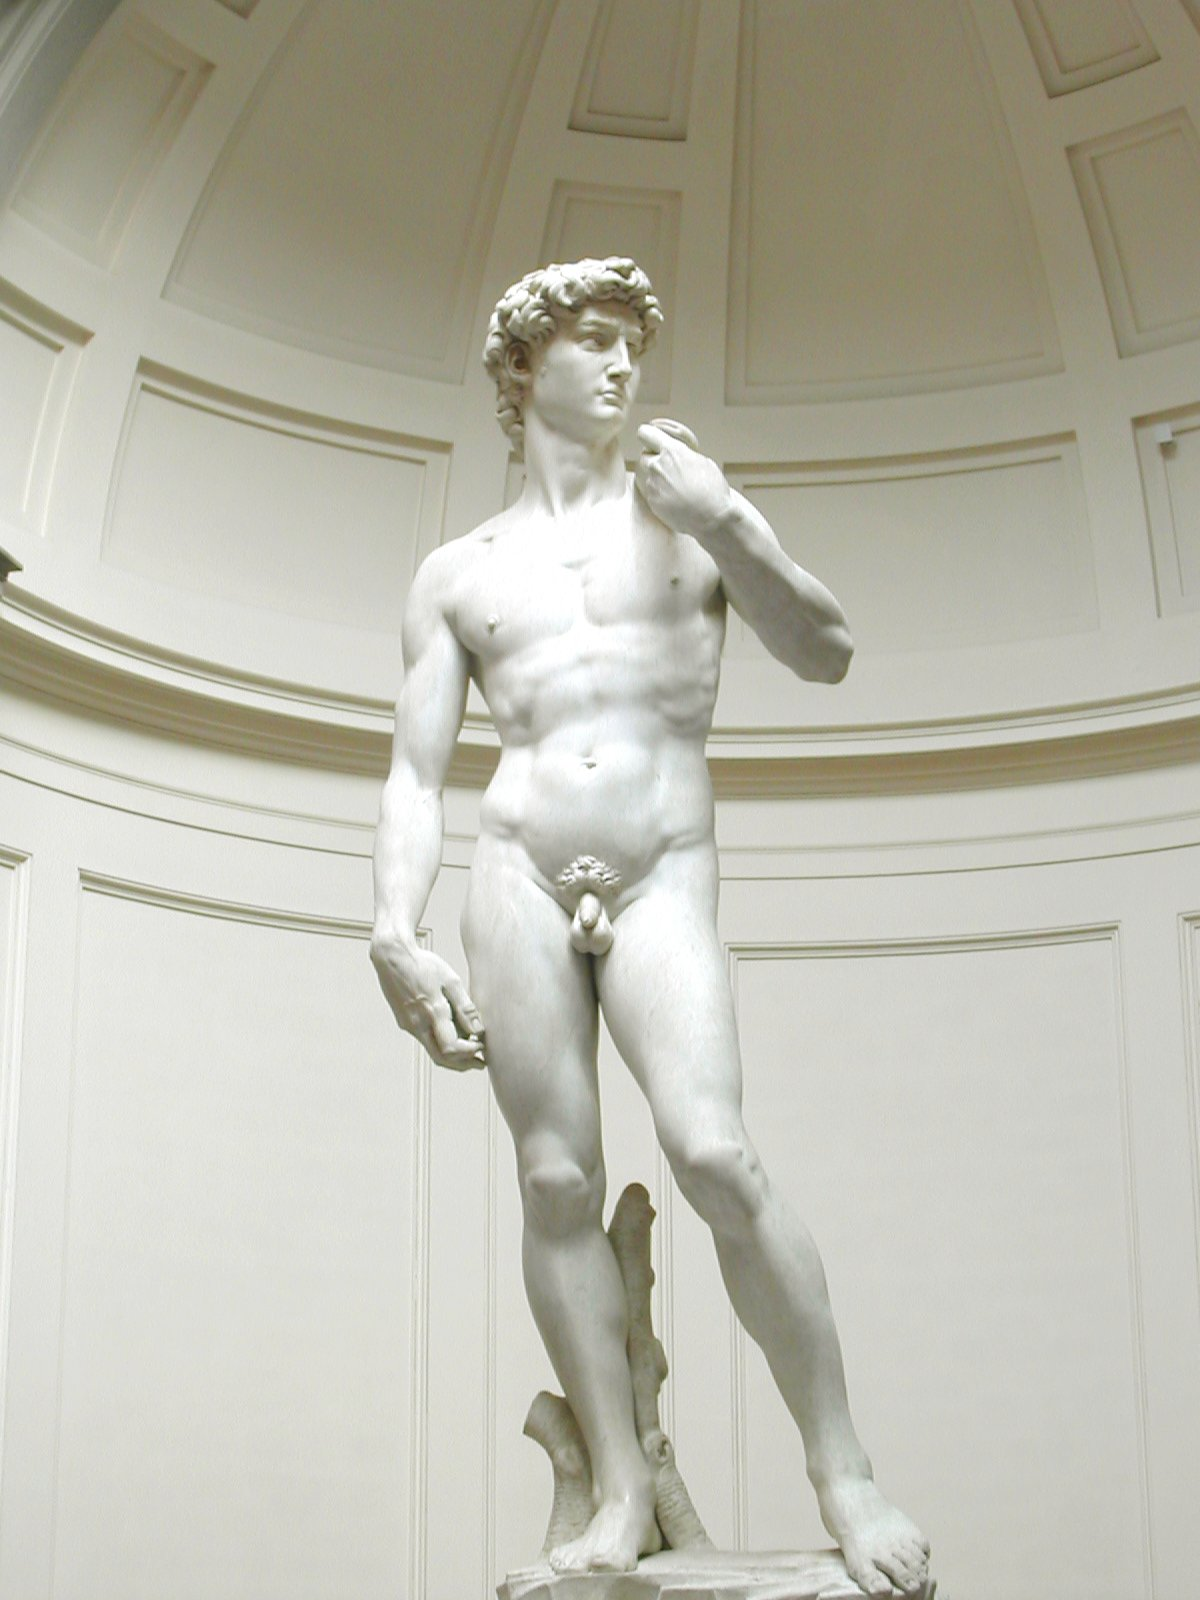 https://i0.wp.com/upload.wikimedia.org/wikipedia/commons/6/63/Michelangelos_David.jpg